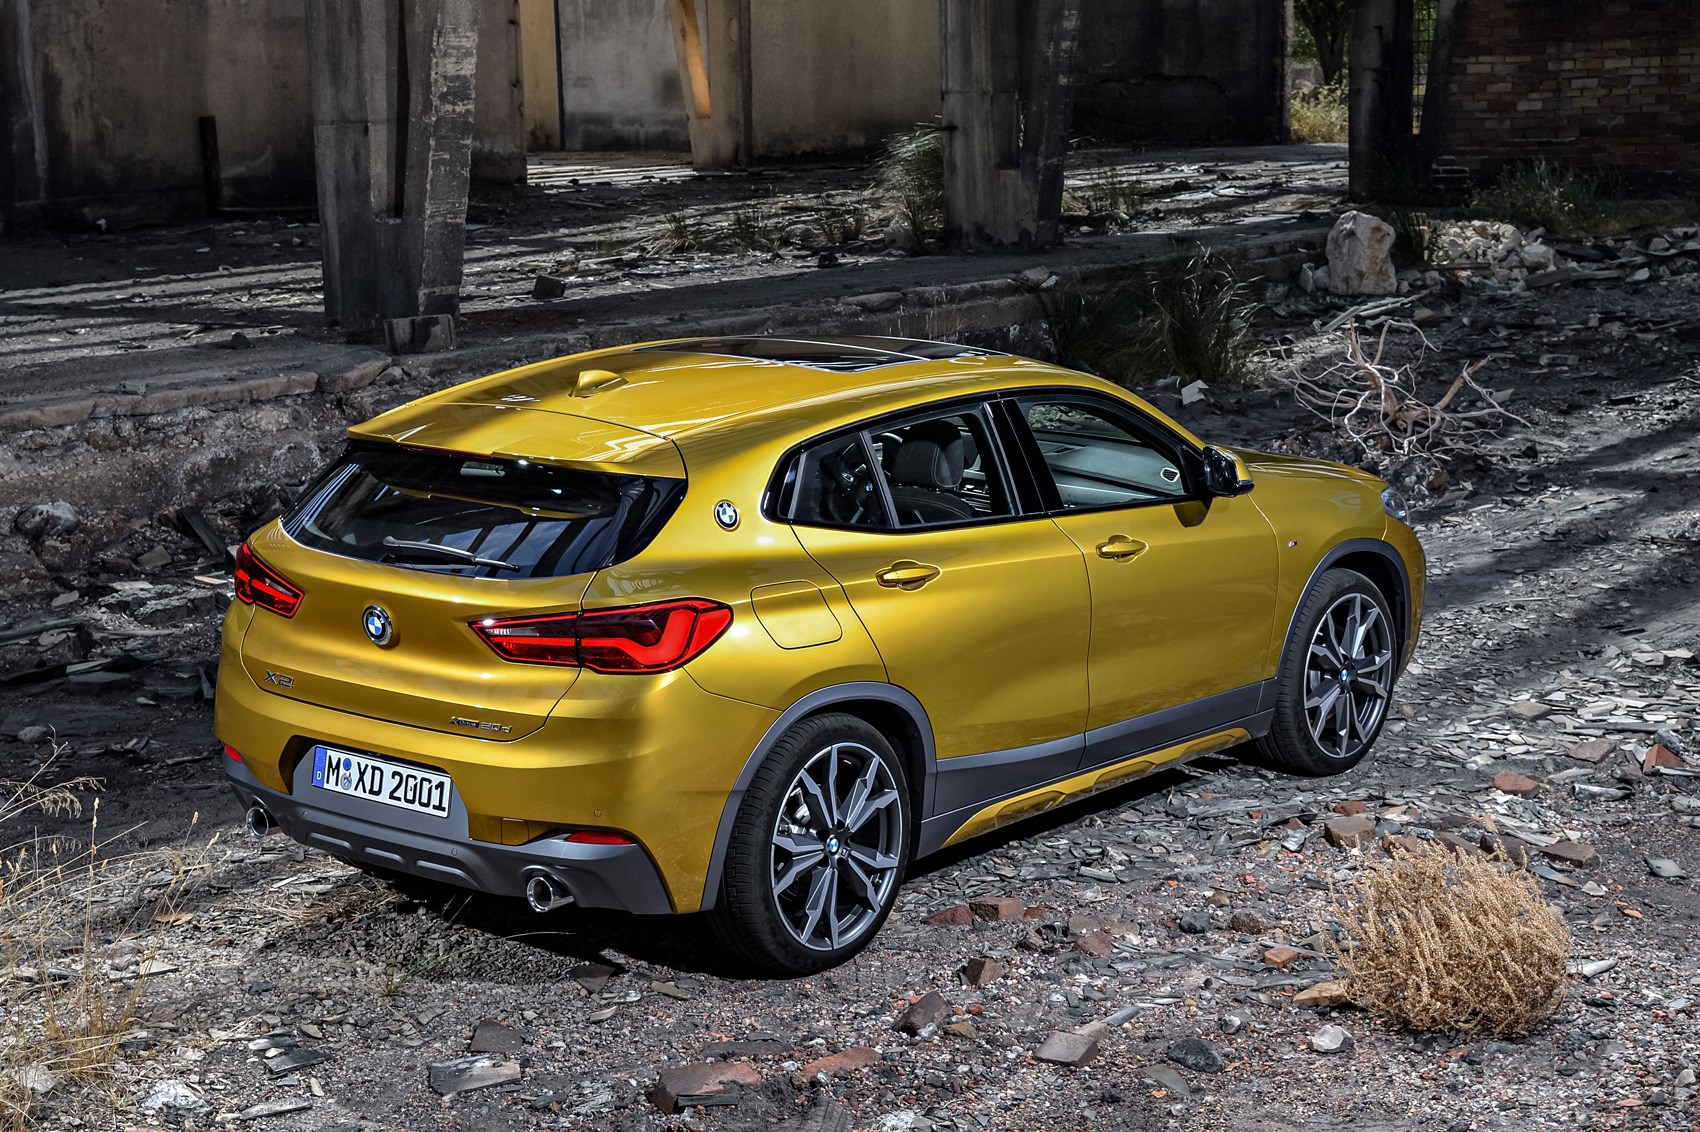 New Volvo Suv >> BMW X2 SUV: new crossover dubbed 'the cool X' revealed | CAR Magazine